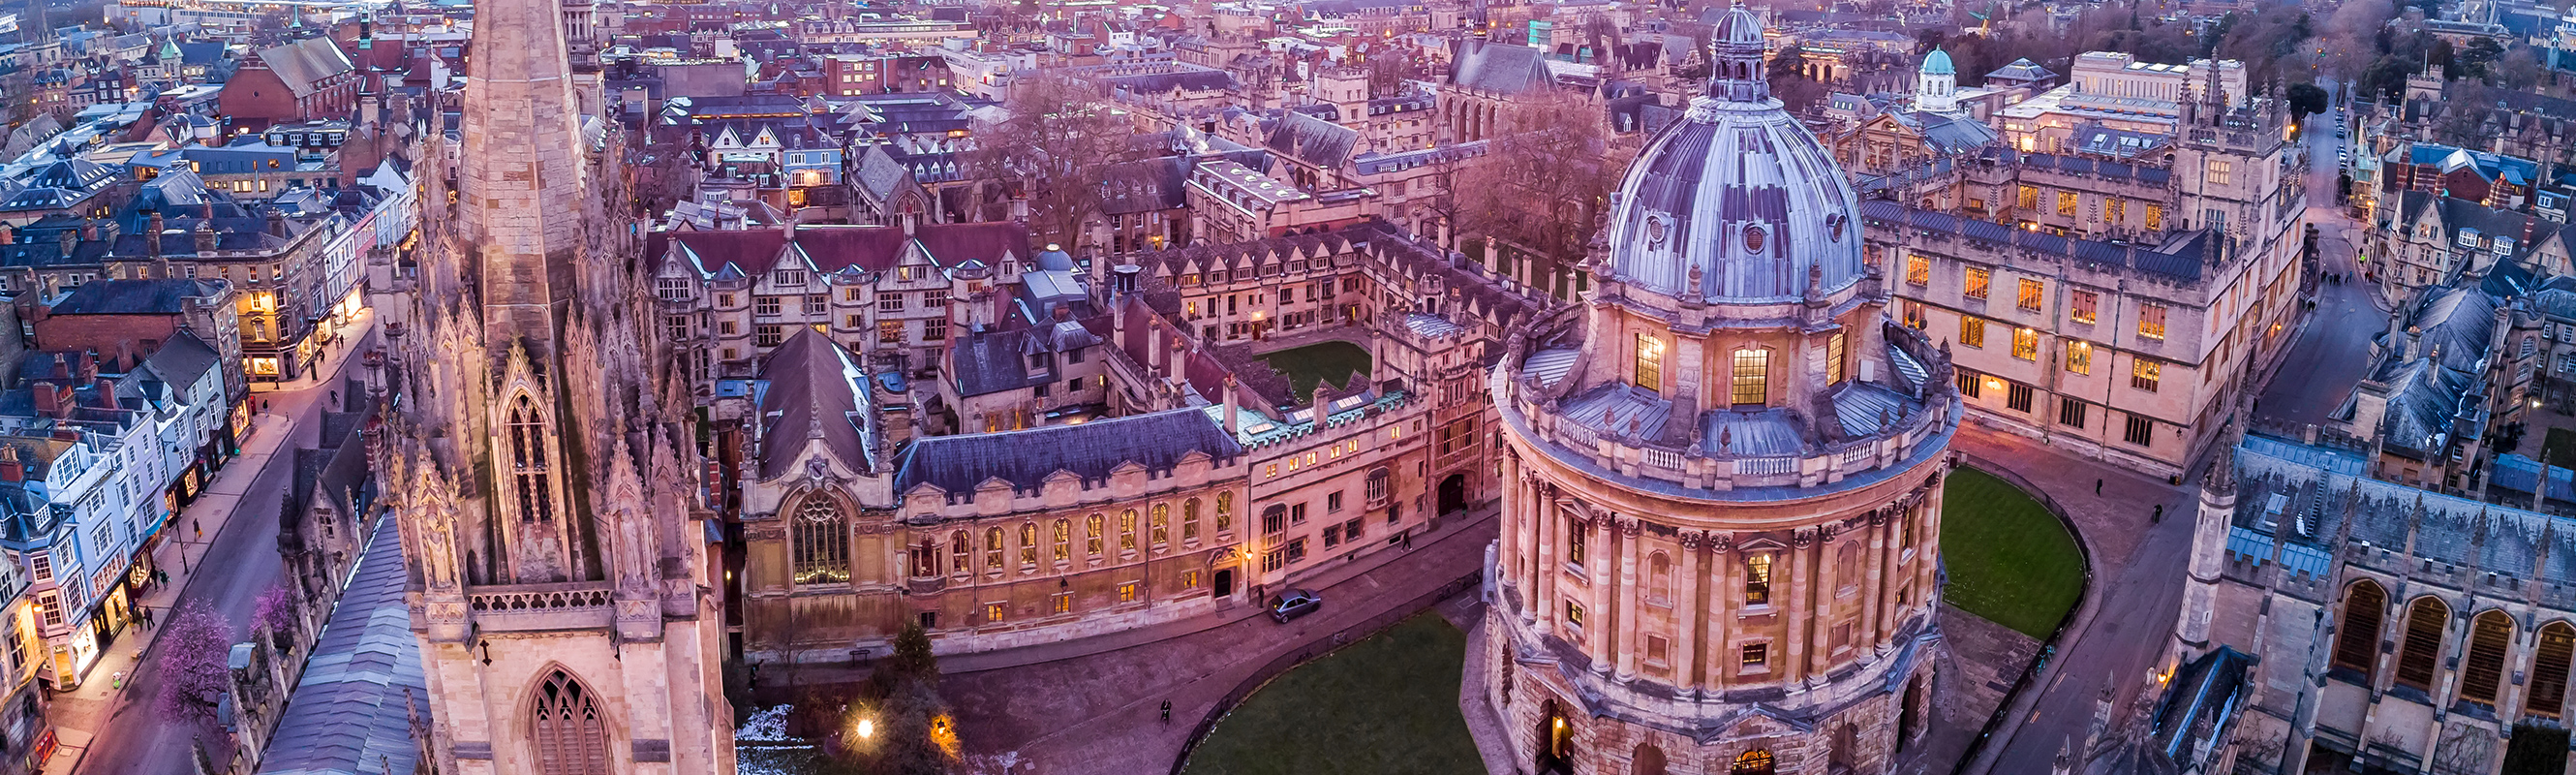 7 Reasons to Visit Oxford in Winter